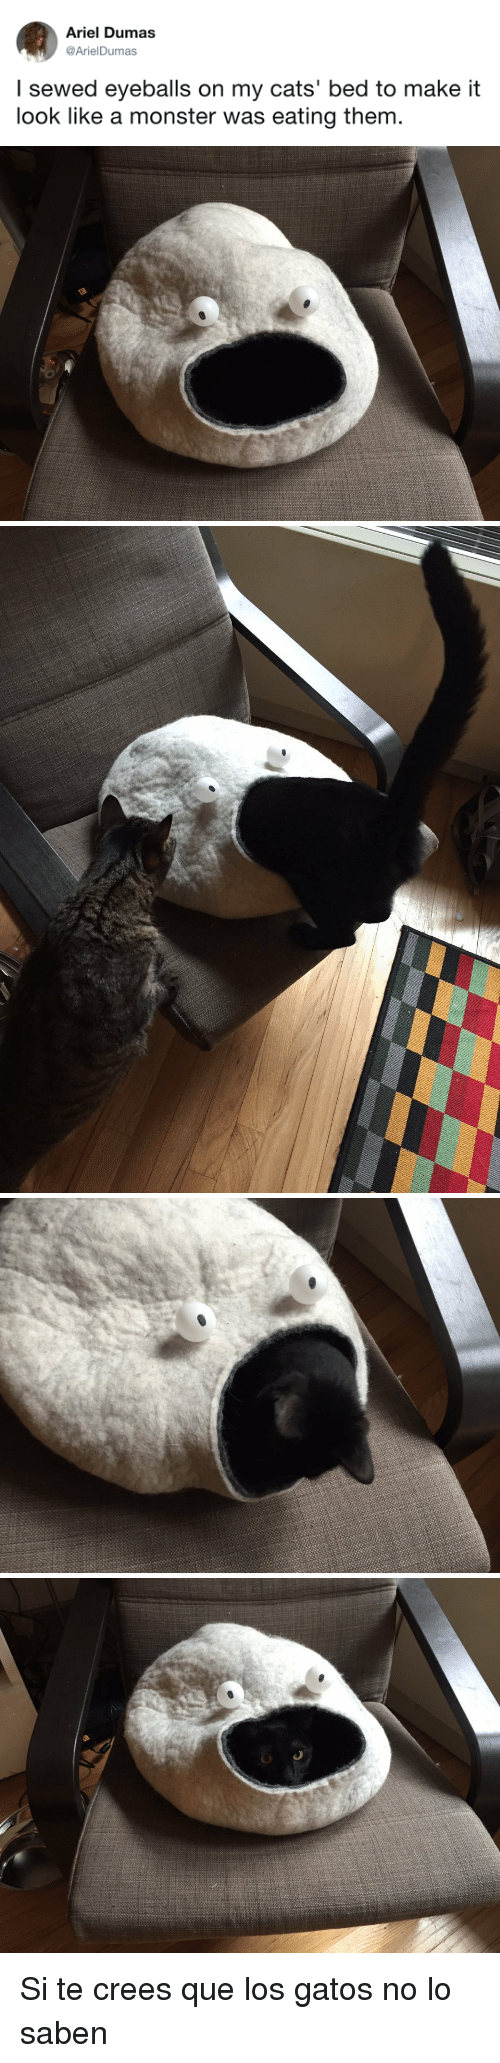 los gatos: Ariel Dumas  @ArielDumas  I sewed eyeballs on my cats' bed to make it  look like a monster was eating them <p>Si te crees que los gatos no lo saben</p>